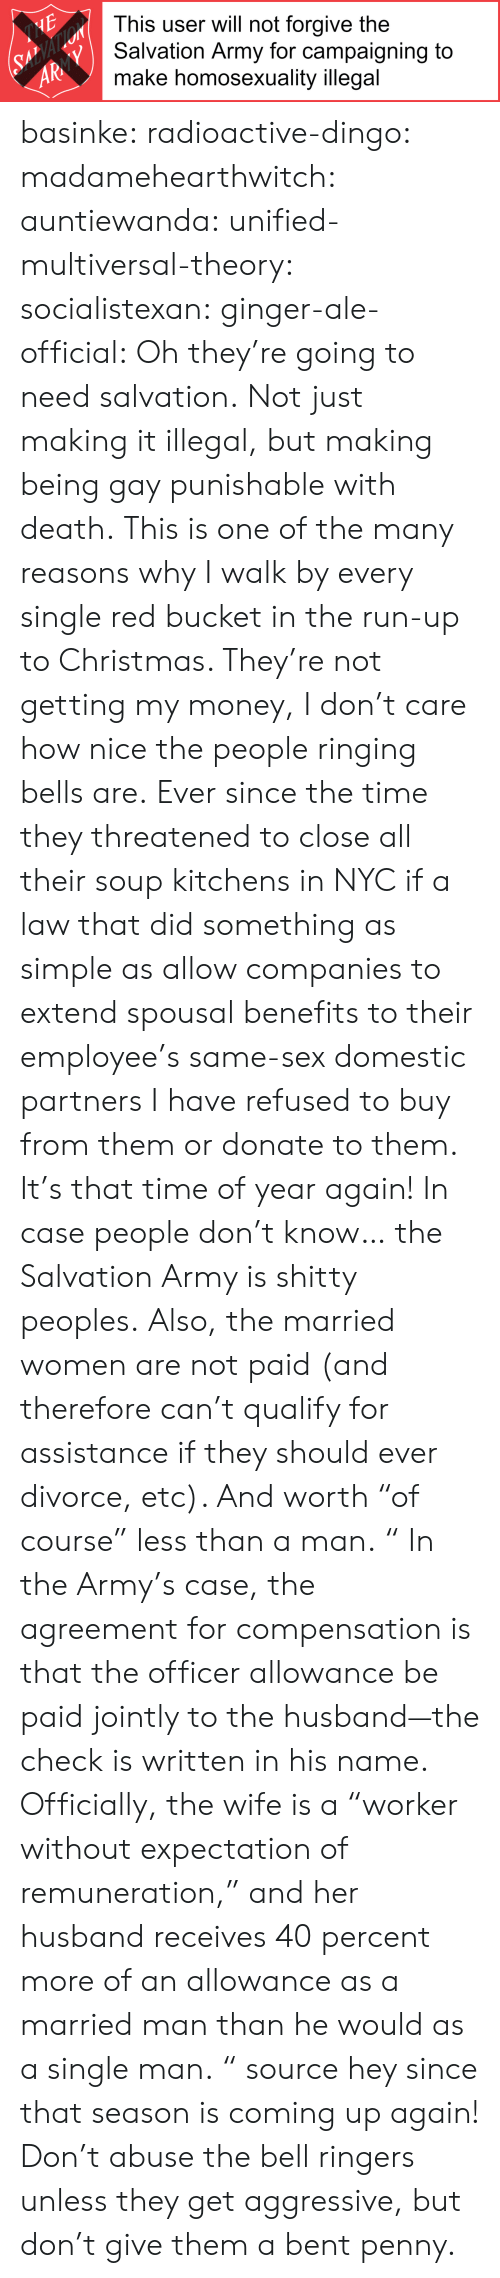 """Paradox: This user will not forgive the  Salvation Army for campaigning to  make homosexuality illegal  AR basinke:  radioactive-dingo:  madamehearthwitch:  auntiewanda:  unified-multiversal-theory:  socialistexan:  ginger-ale-official: Oh they're going to need salvation. Not just making it illegal, but making being gay punishable with death.  This is one of the many reasons why I walk by every single red bucket in the run-up to Christmas. They're not getting my money, I don't care how nice the people ringing bells are.  Ever since the time they threatened to close all their soup kitchens in NYC if a law that did something as simple as allow companies to extend spousal benefits to their employee's same-sex domestic partners I have refused to buy from them or donate to them.  It's that time of year again! In case people don't know… the Salvation Army is shitty peoples. Also, the married women are not paid (and therefore can't qualify for assistance if they should ever divorce, etc). And worth""""of course"""" less than a man. """"  In the Army's case, the agreement for compensation is that the officer allowance be paid jointly to the husband—the check is written in his name. Officially, the wife is a """"worker without expectation of remuneration,"""" and her husband receives 40 percent more of an allowance as a married man than he would as a single man.  """" source  hey since that season is coming up again!    Don't abuse the bell ringers unless they get aggressive, but don't give them a bent penny."""